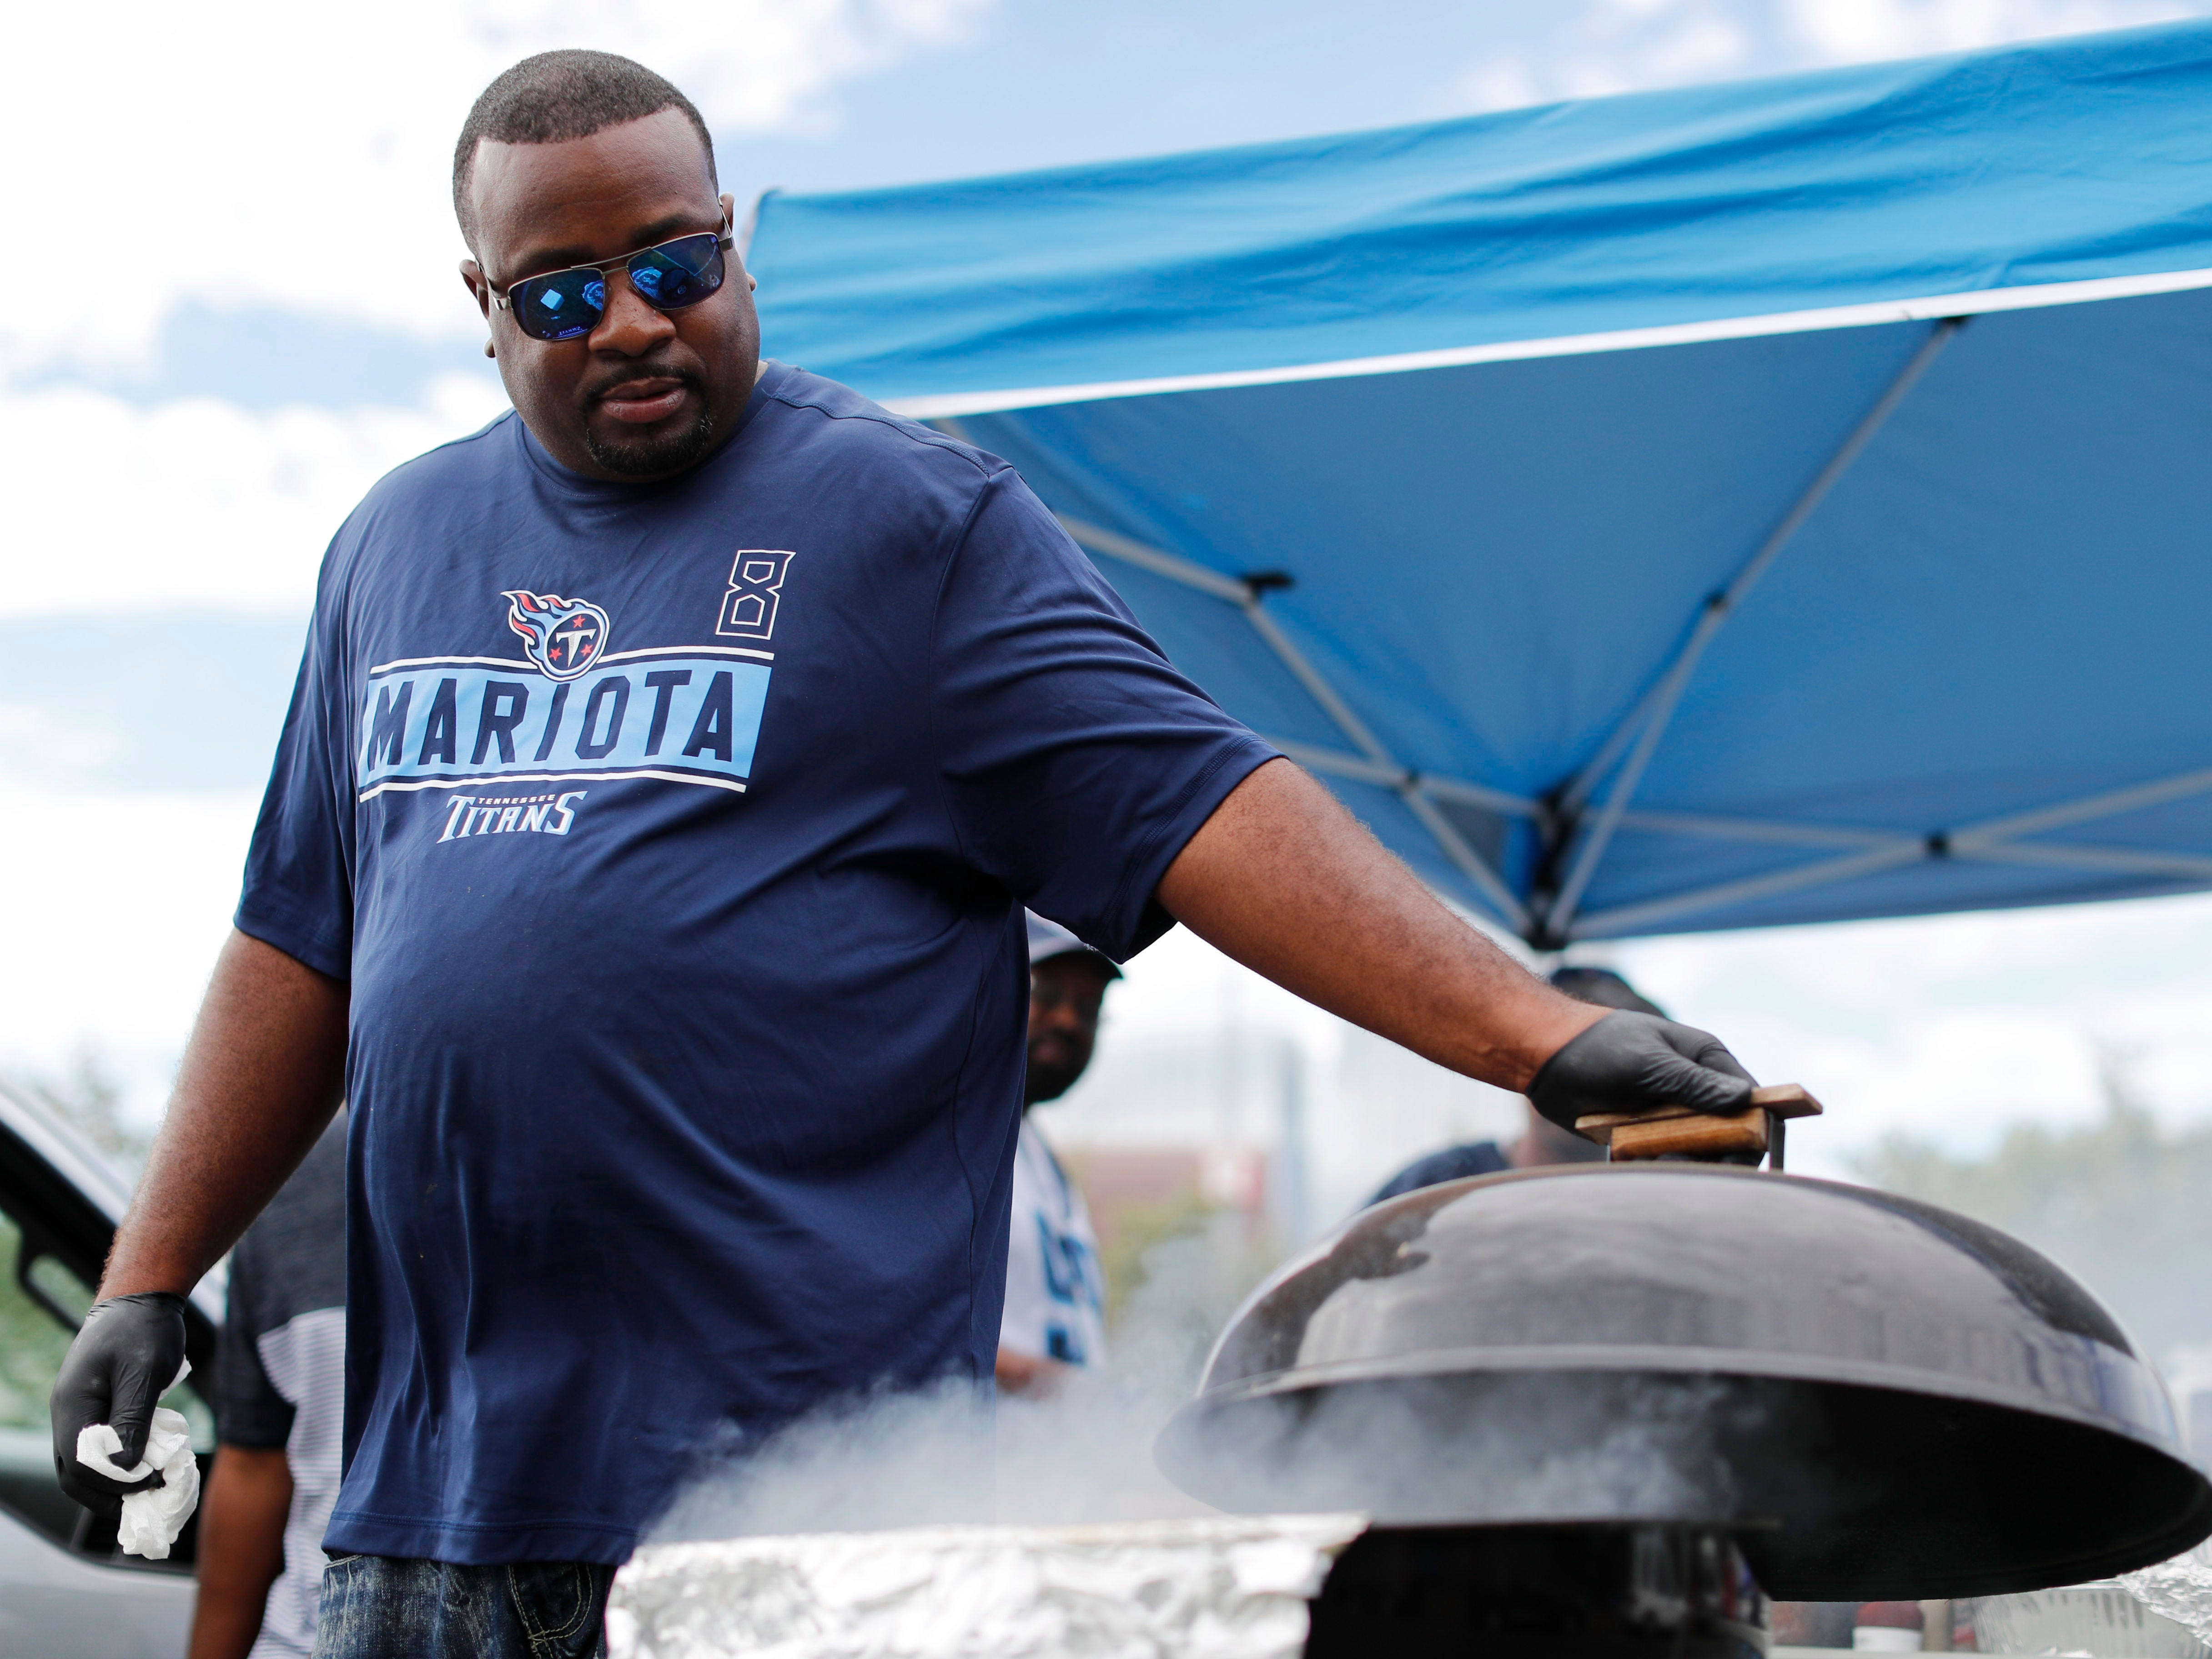 B.P. Poynter grills some burgers before the Titans' game against the Texans at Nissan Stadium Sunday, Sept. 16, 2018, in Nashville, Tenn.